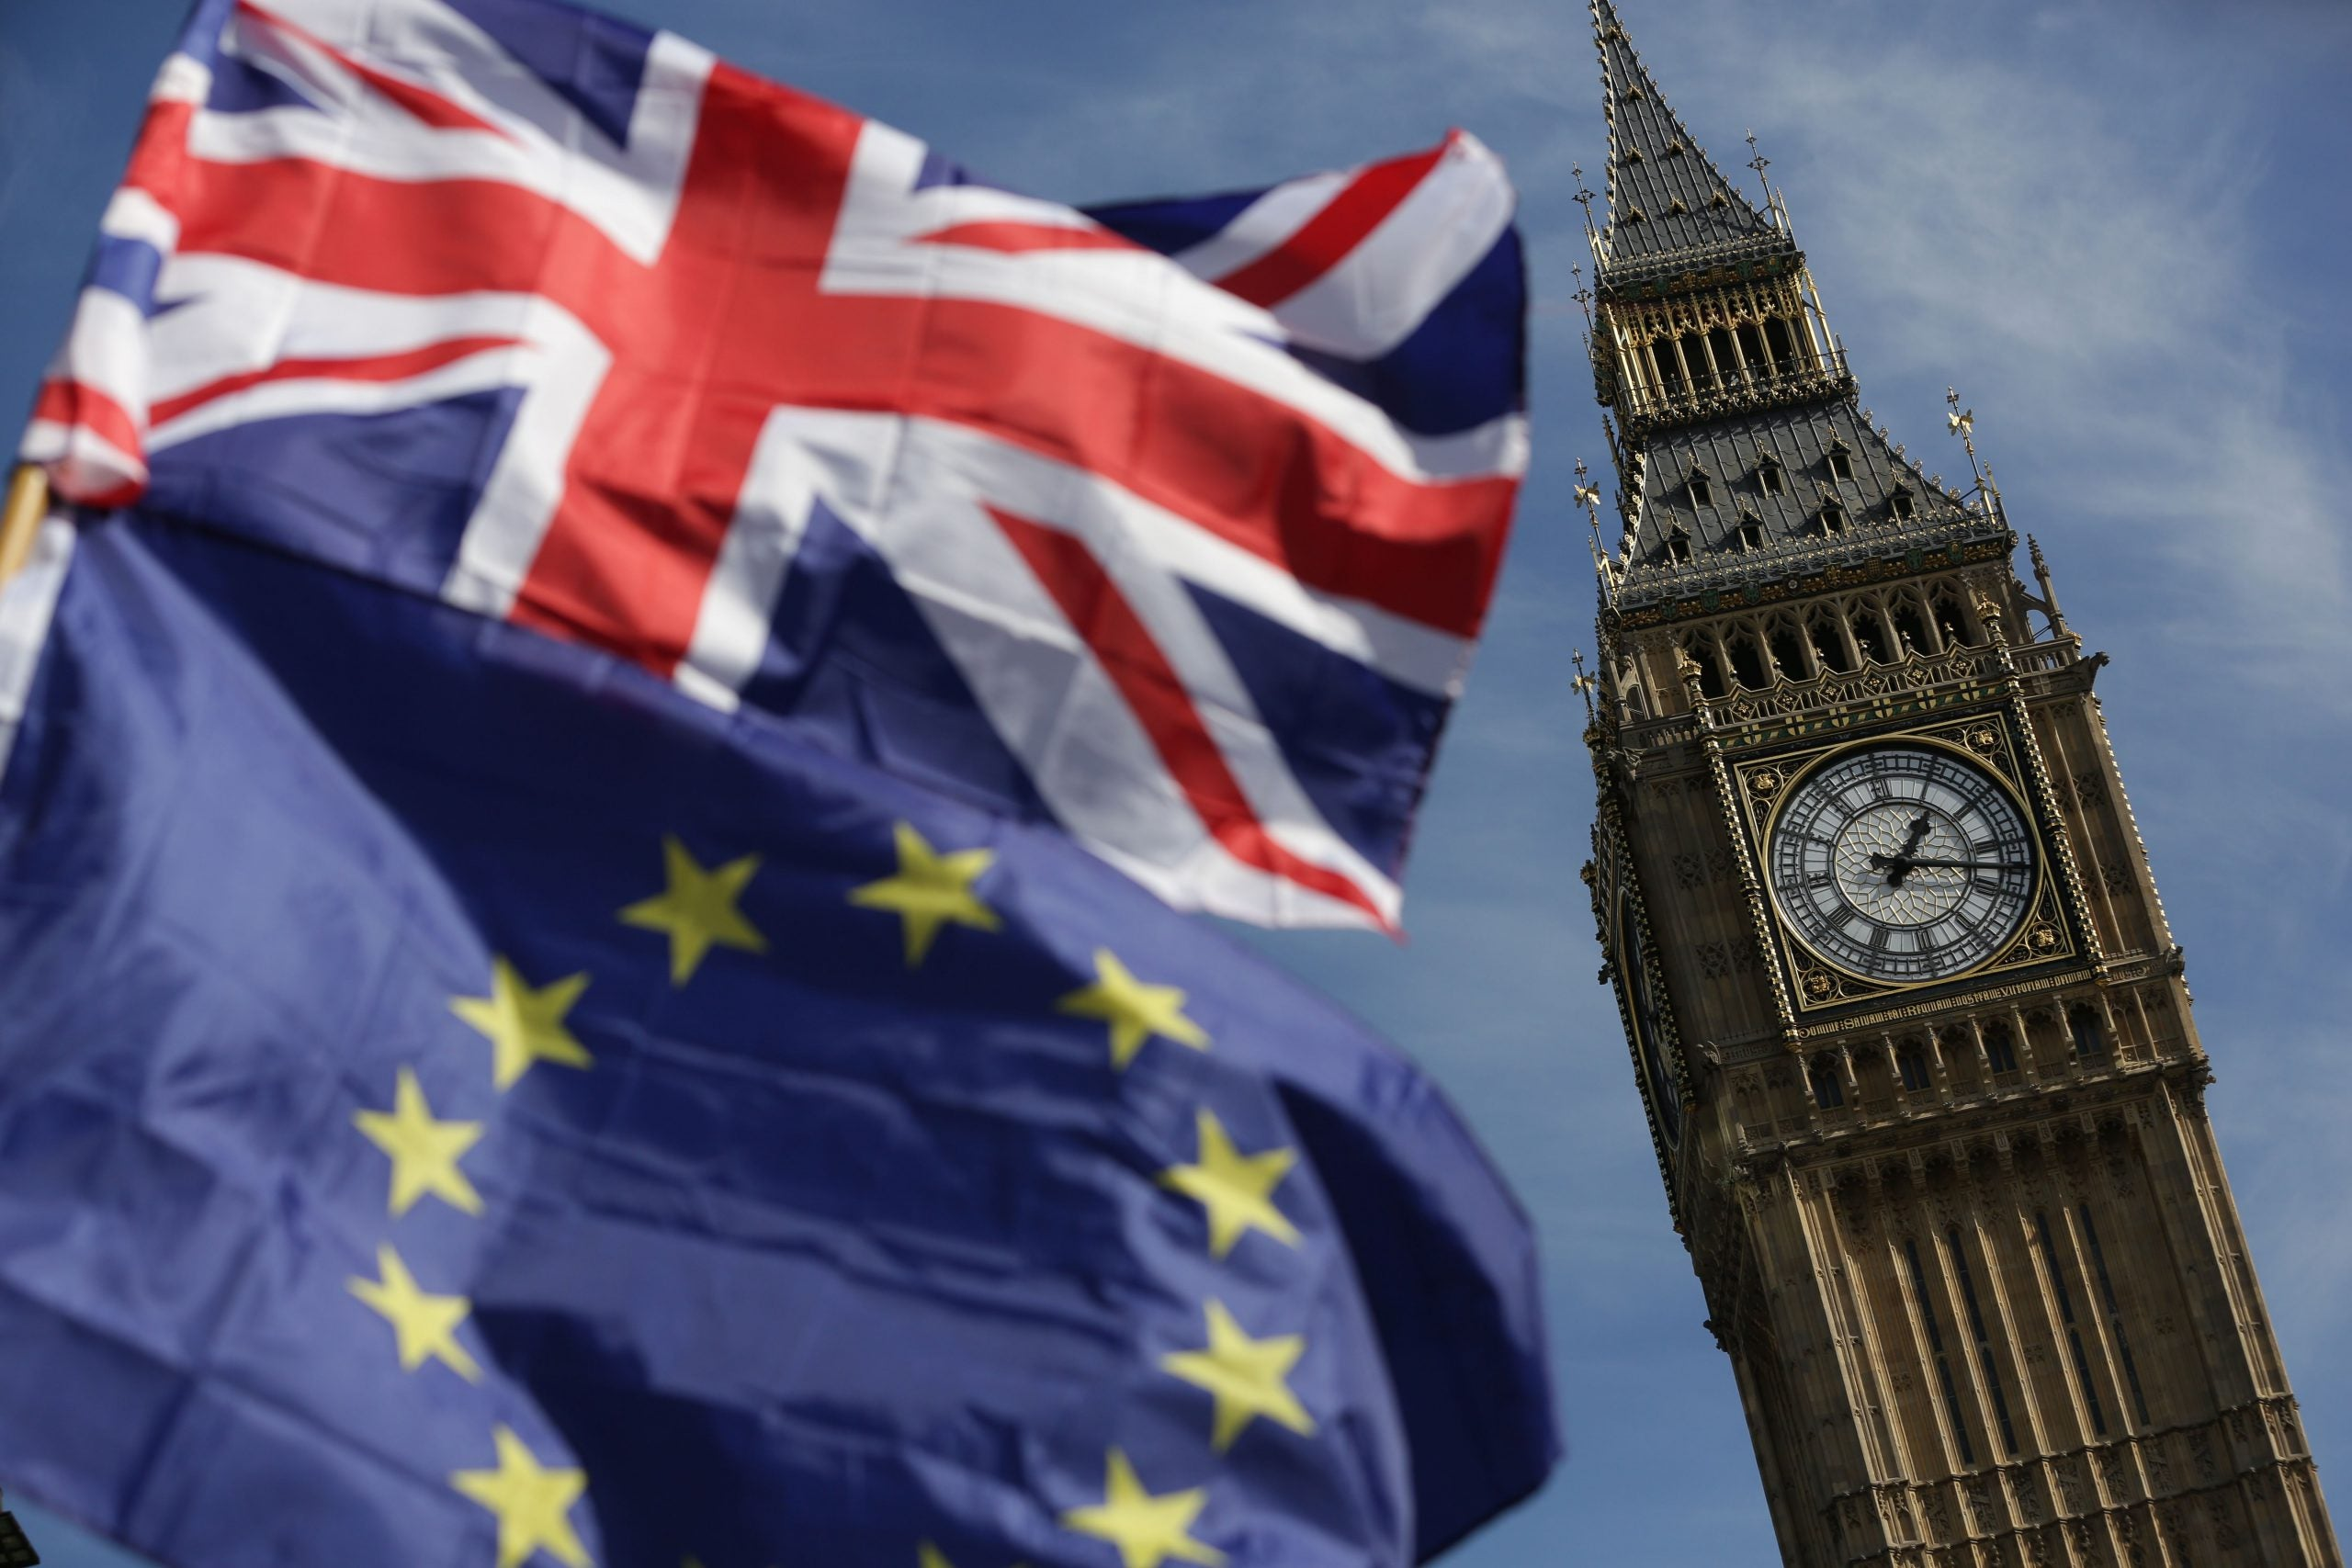 Reuniting and Renewing the Kingdom: Britain beyond Brexit